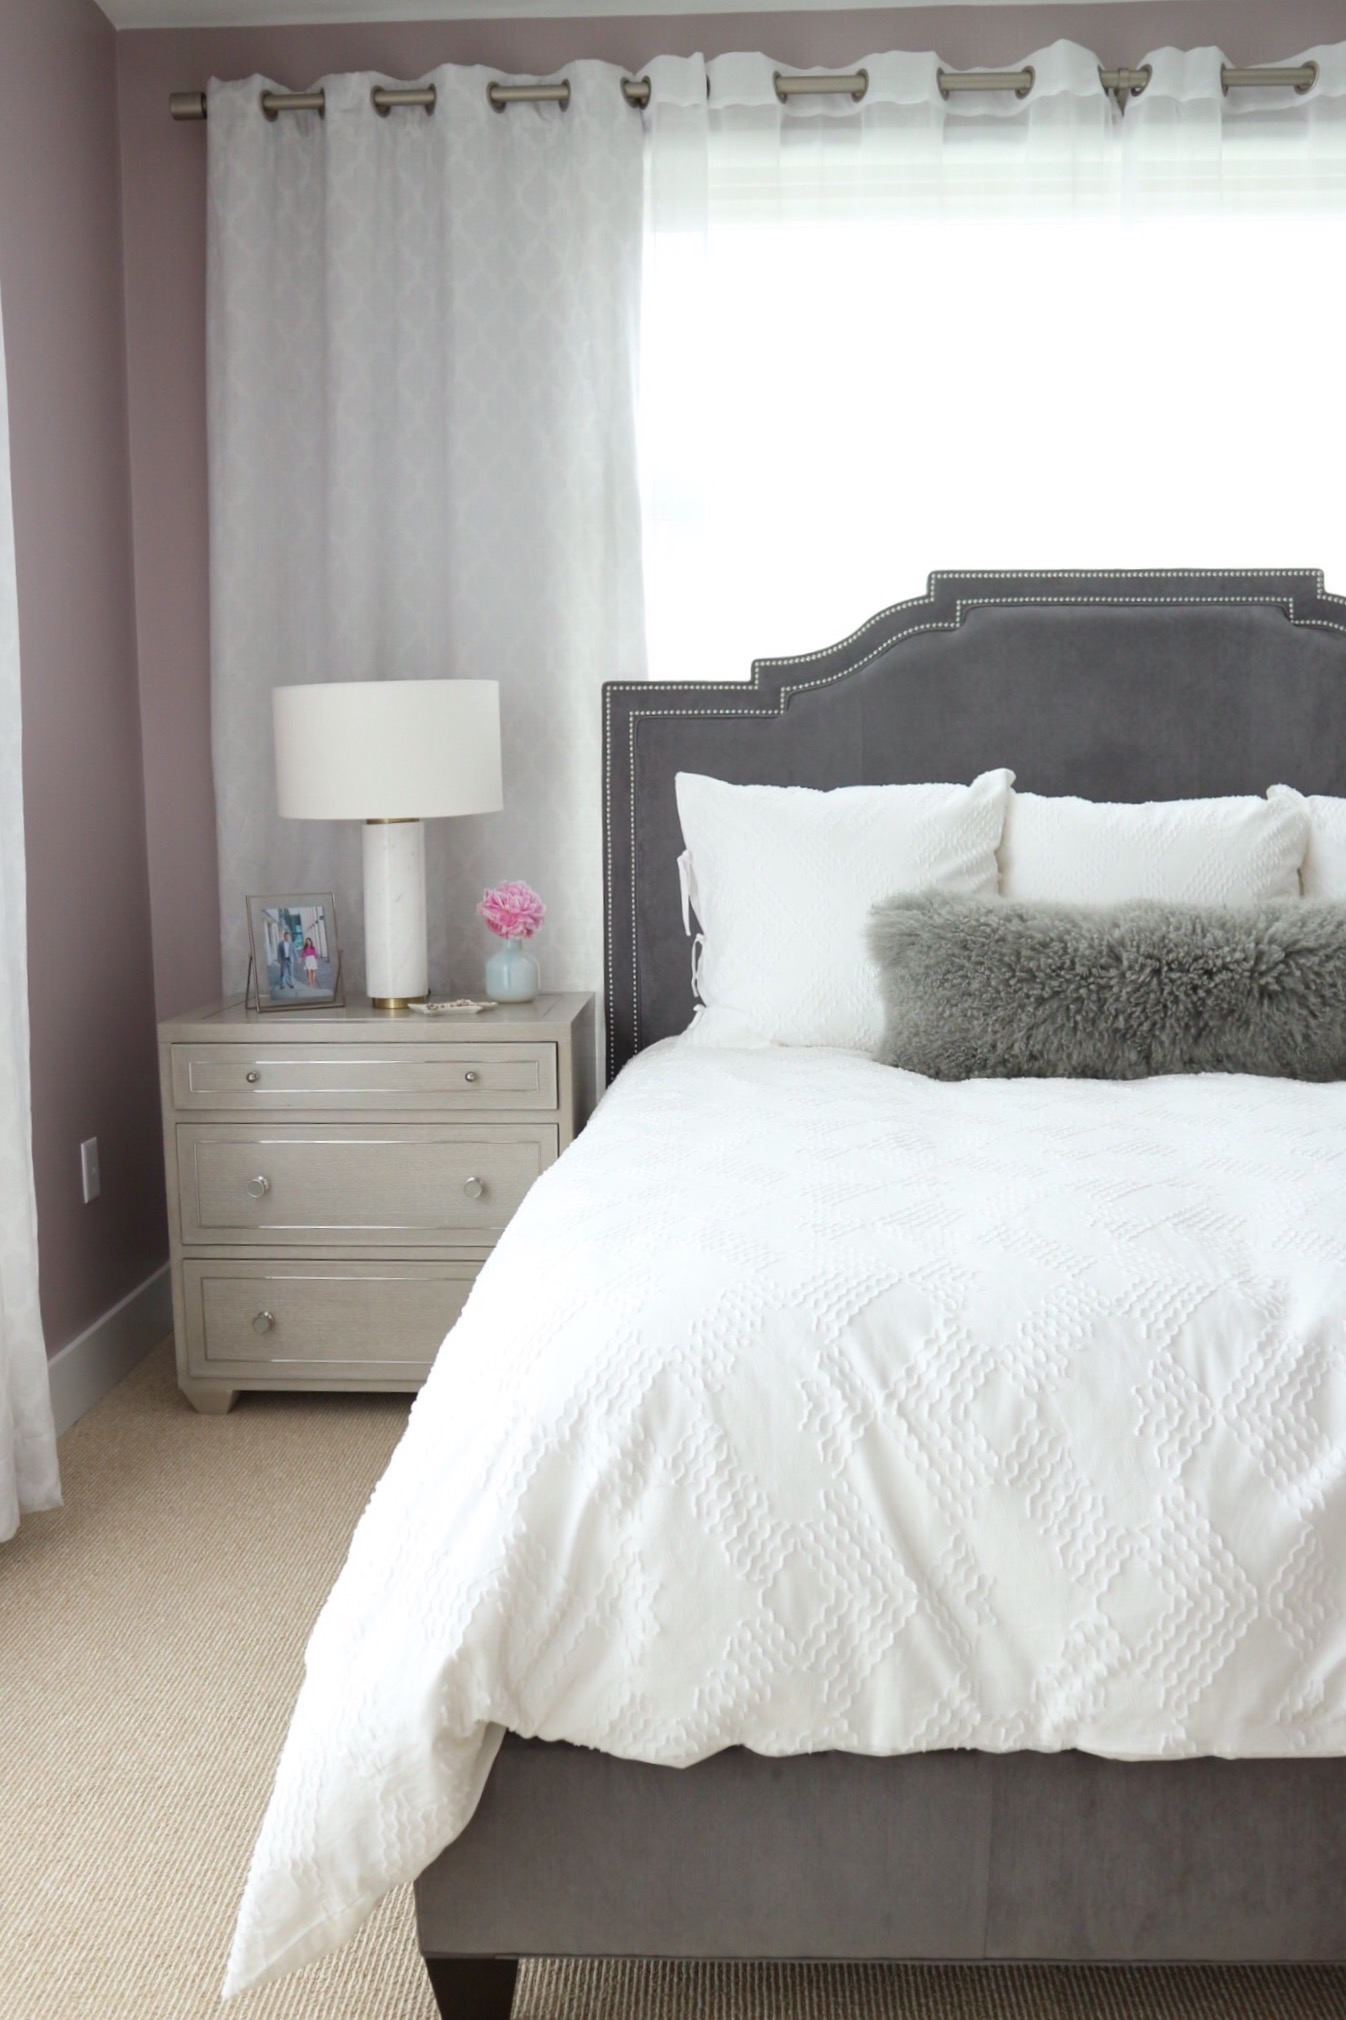 sherwin williams chaise mauve, grey upholstered bed